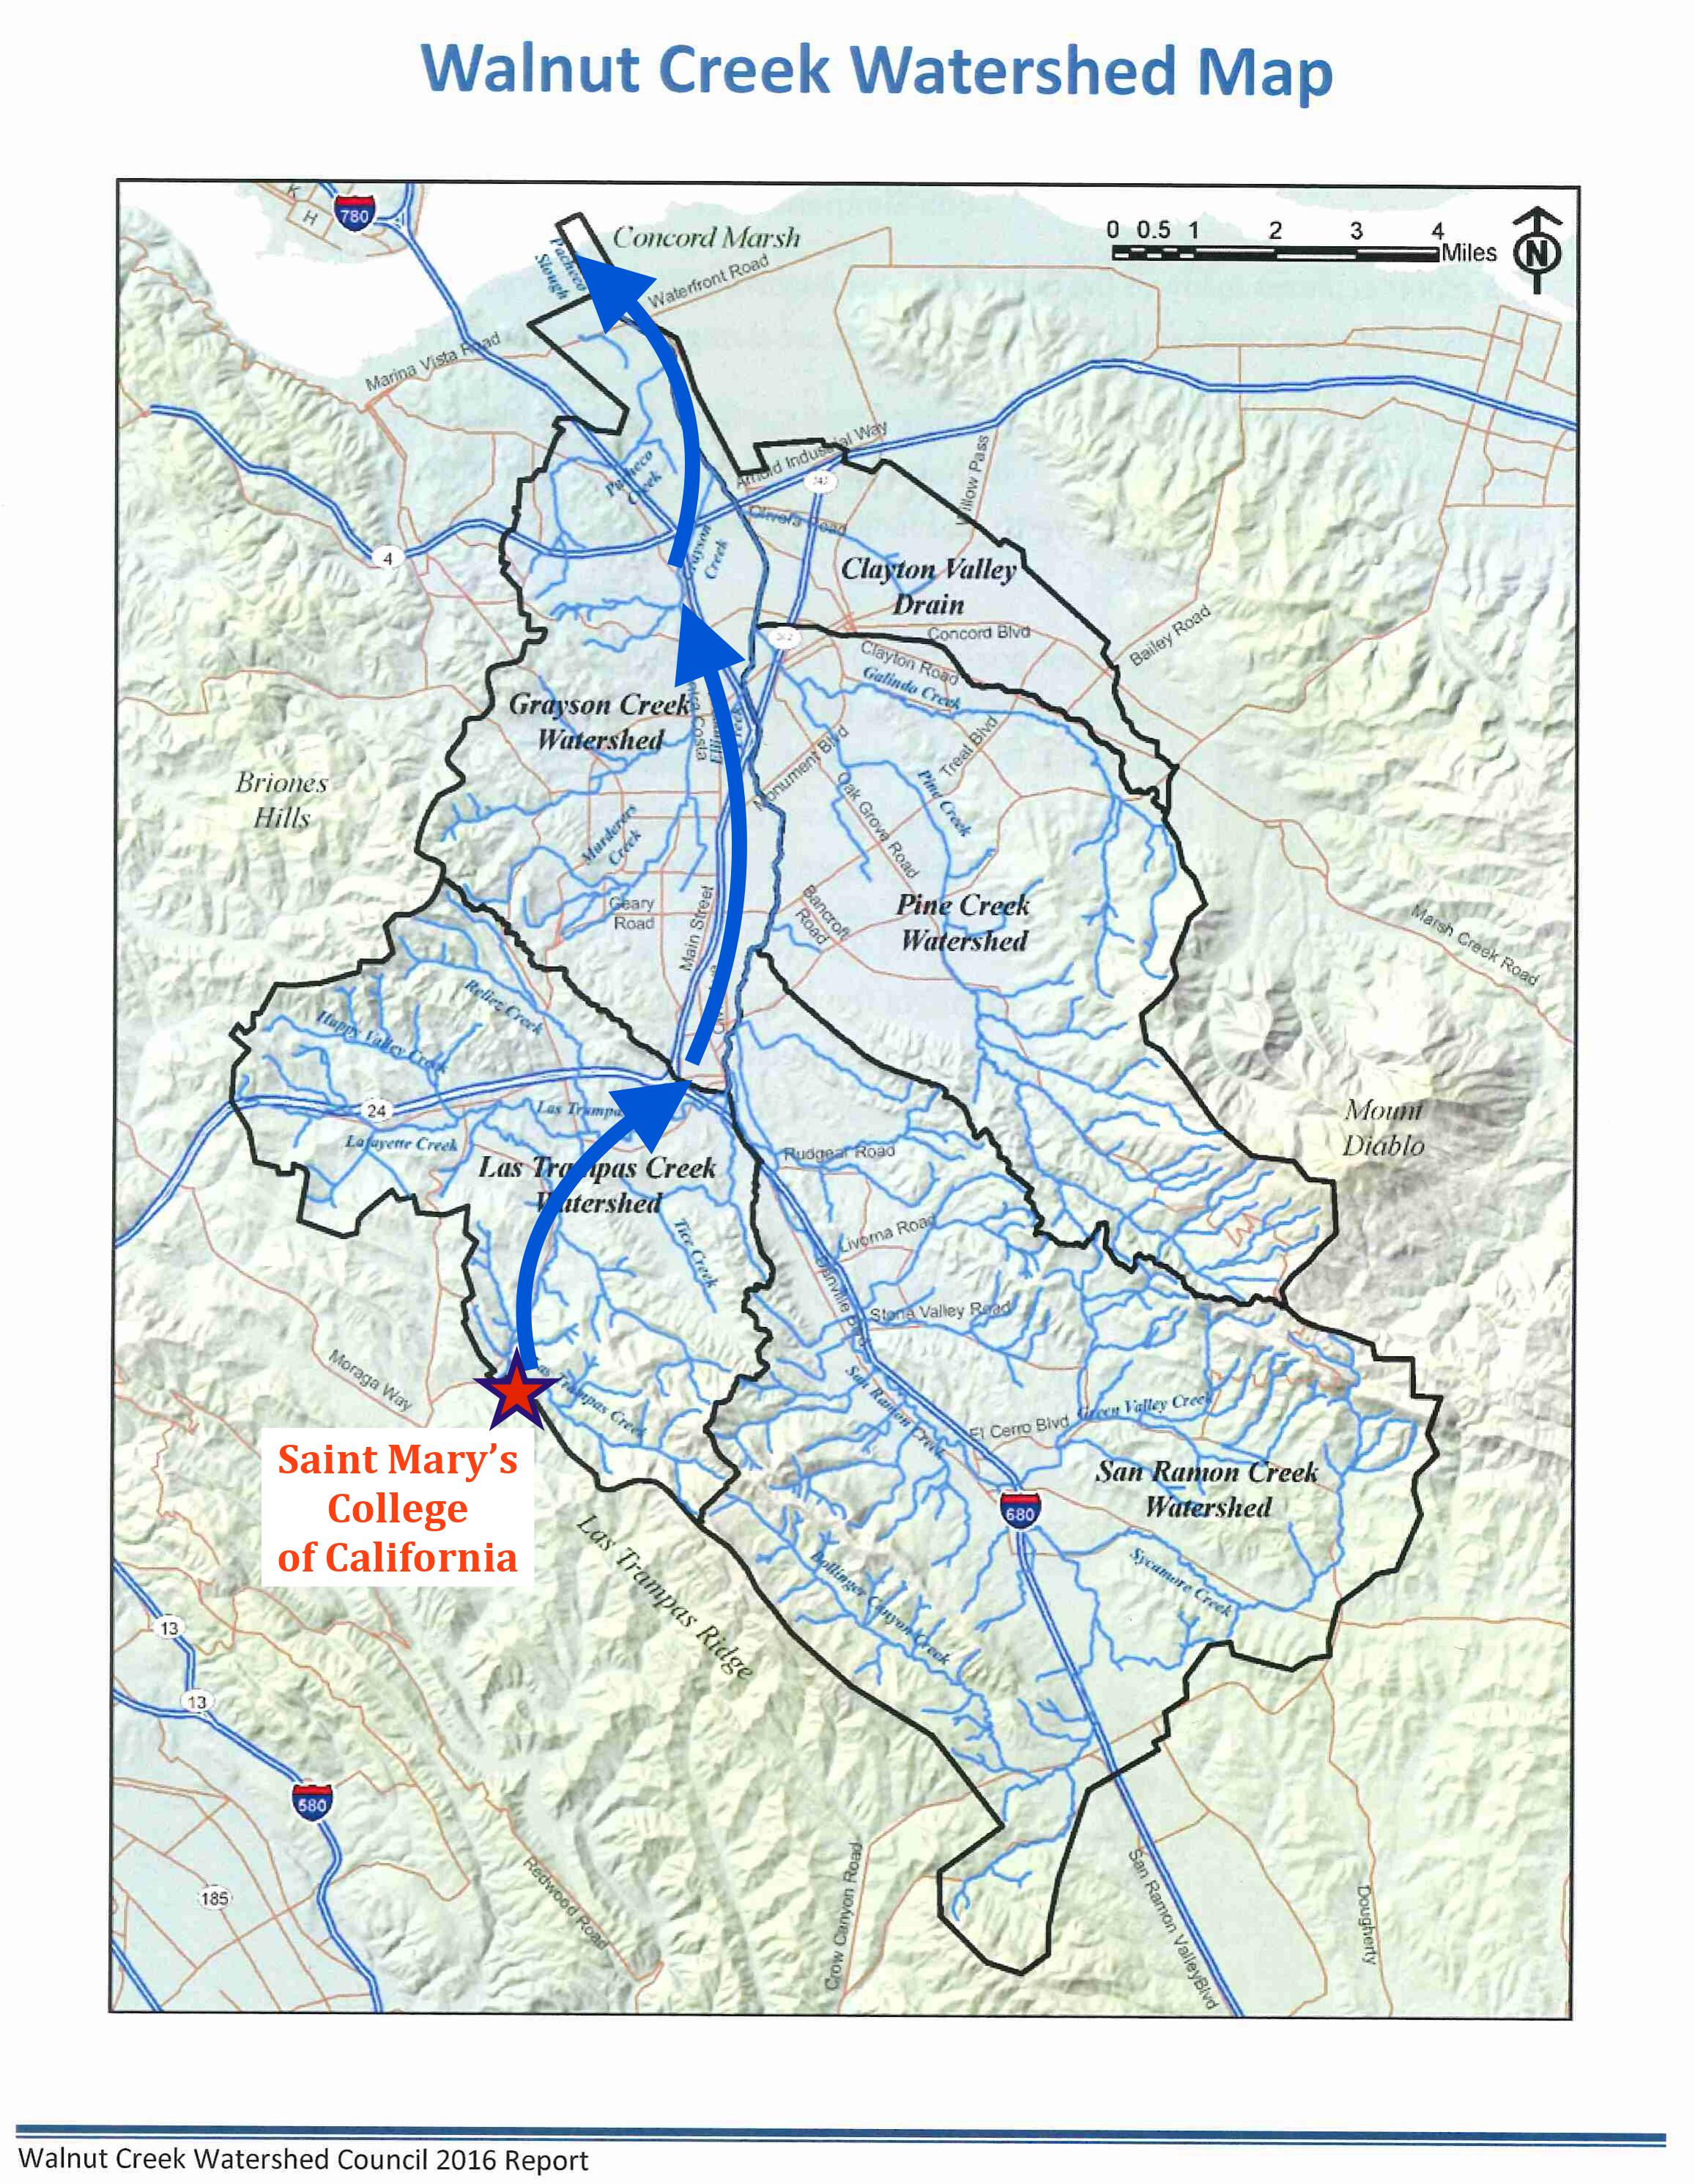 Walnut Creek Watershed Map, provided by the Walnut Creek Watershed Council